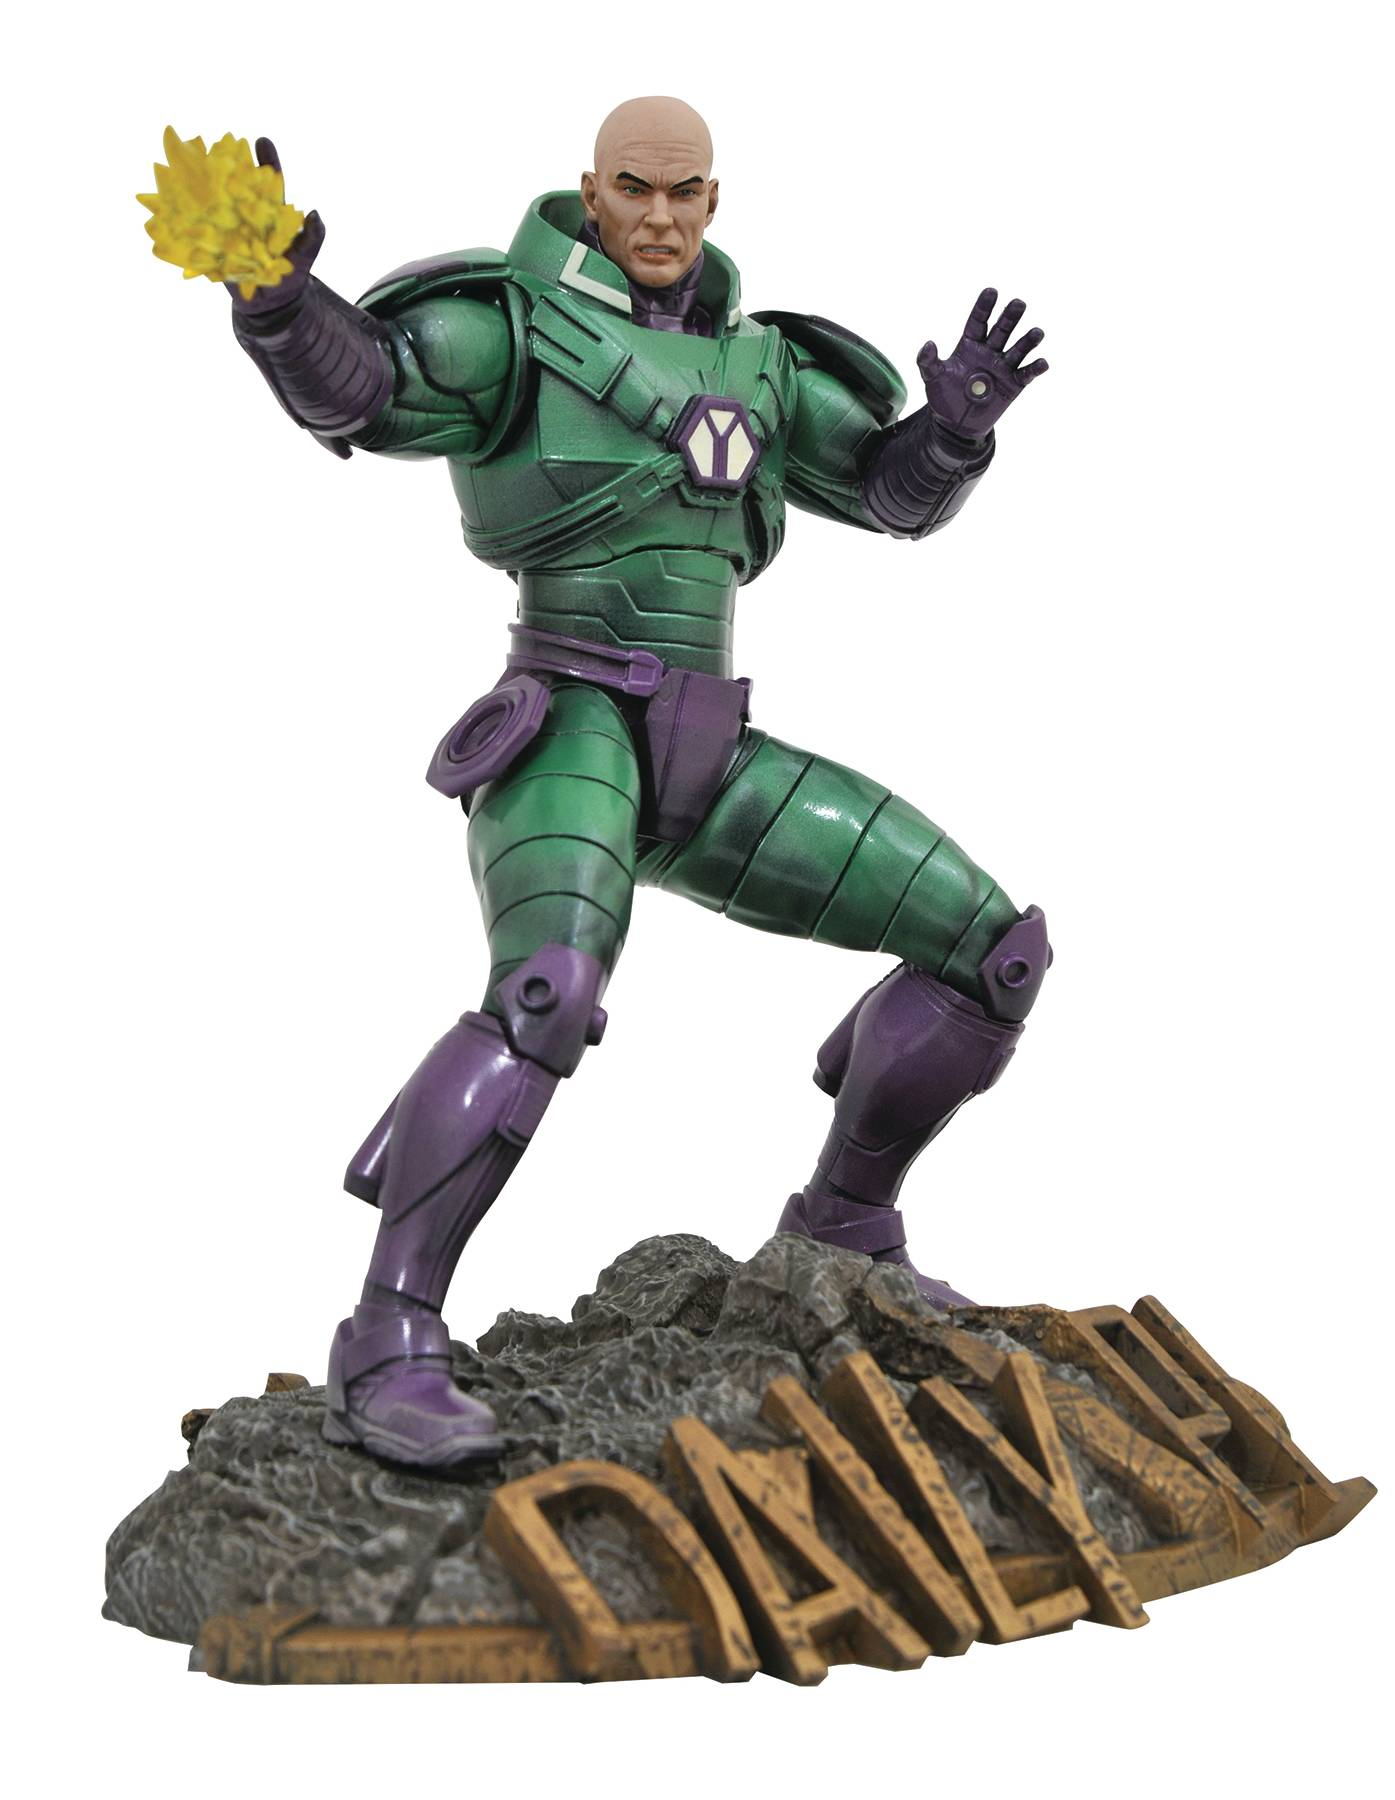 Diamond DC Comics Gallery Lex Luthor Statue